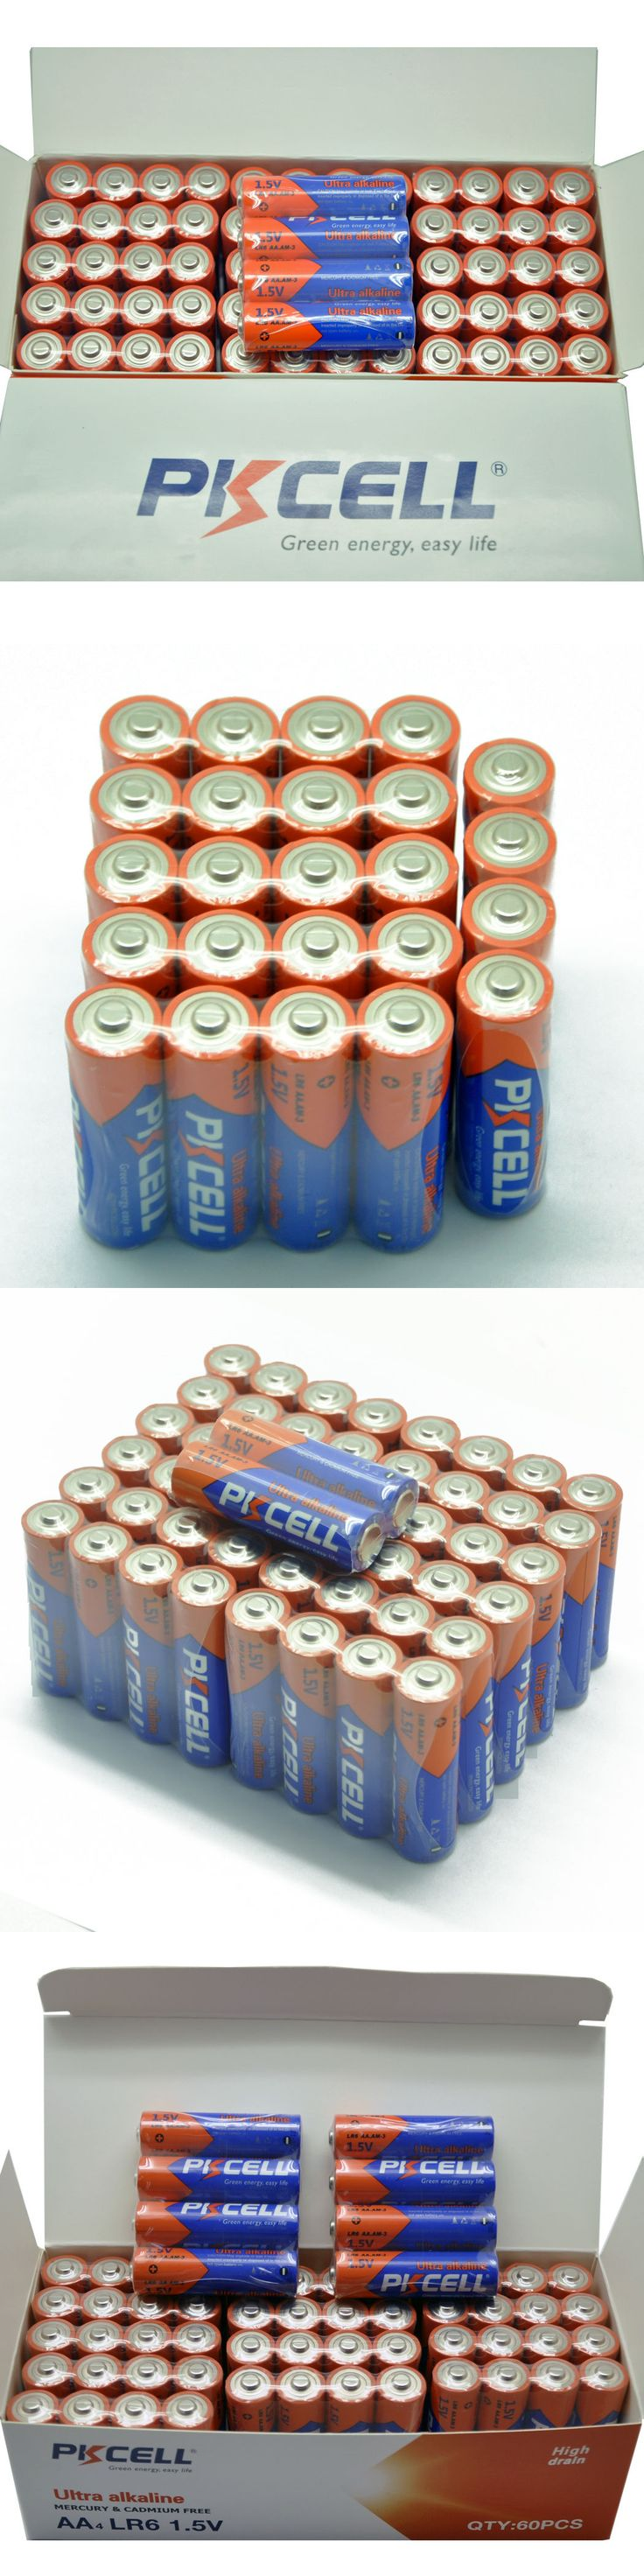 Batteries and Power Accessories: Wholesale Bulk Lot 1000 X Aa Lr6 Am3 Mn1500 Alkaline Batteries 1.5V Industrial -> BUY IT NOW ONLY: $188.88 on eBay!